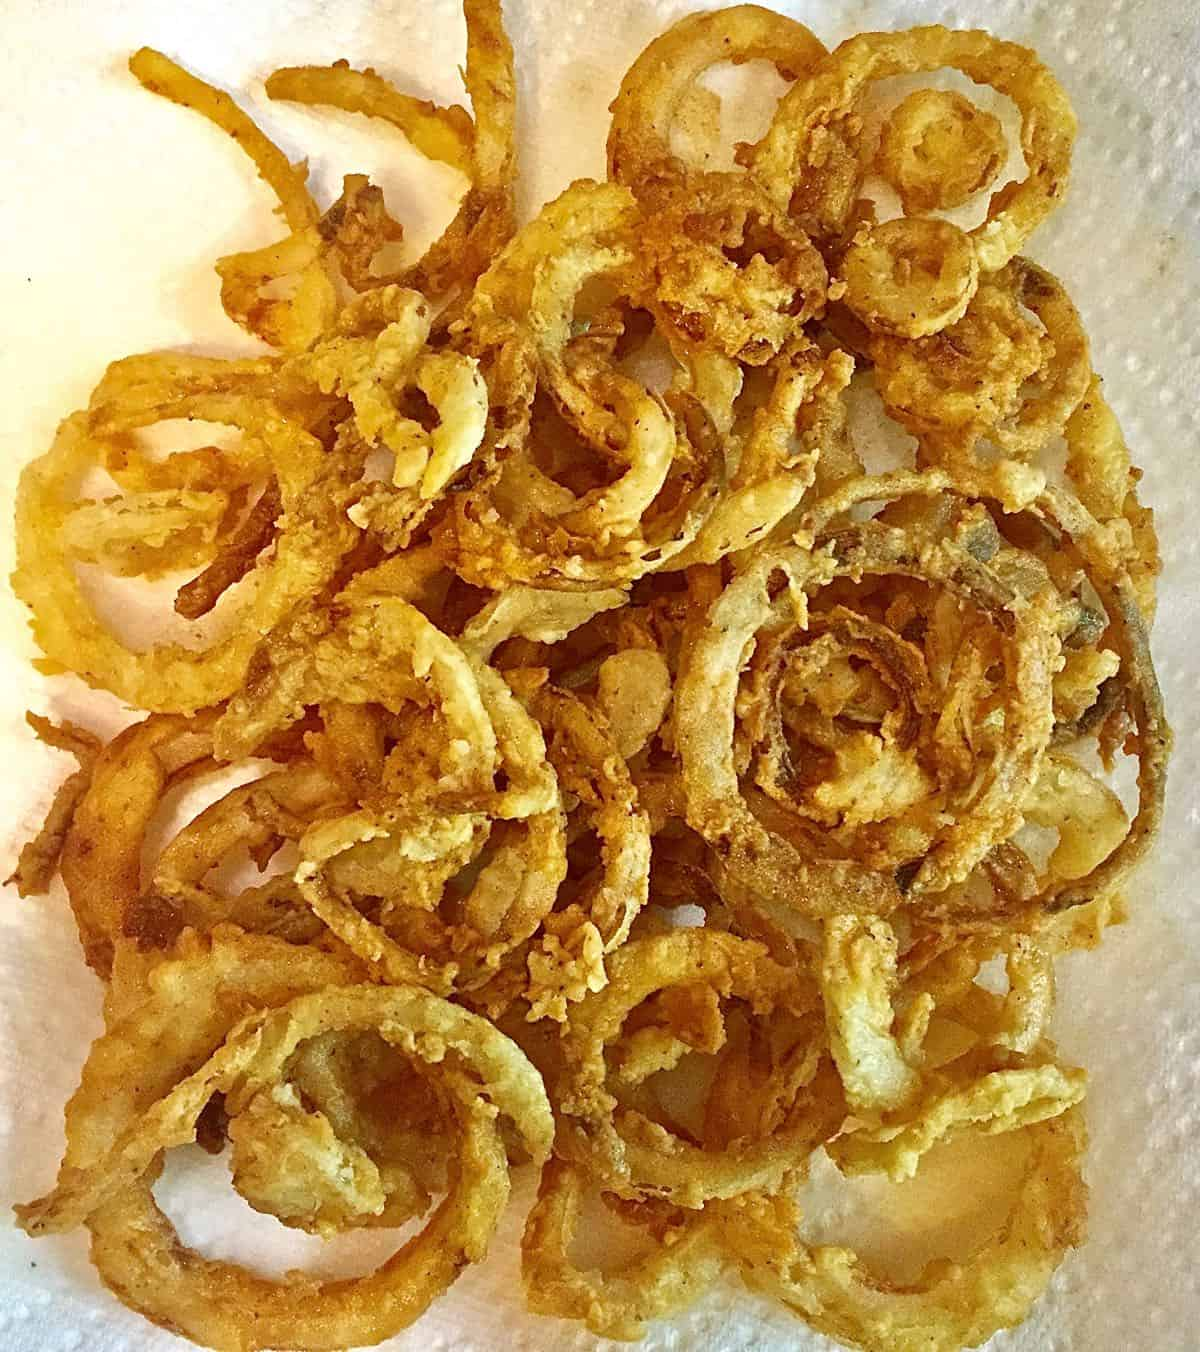 Fried onion rings draining on a paper towel.